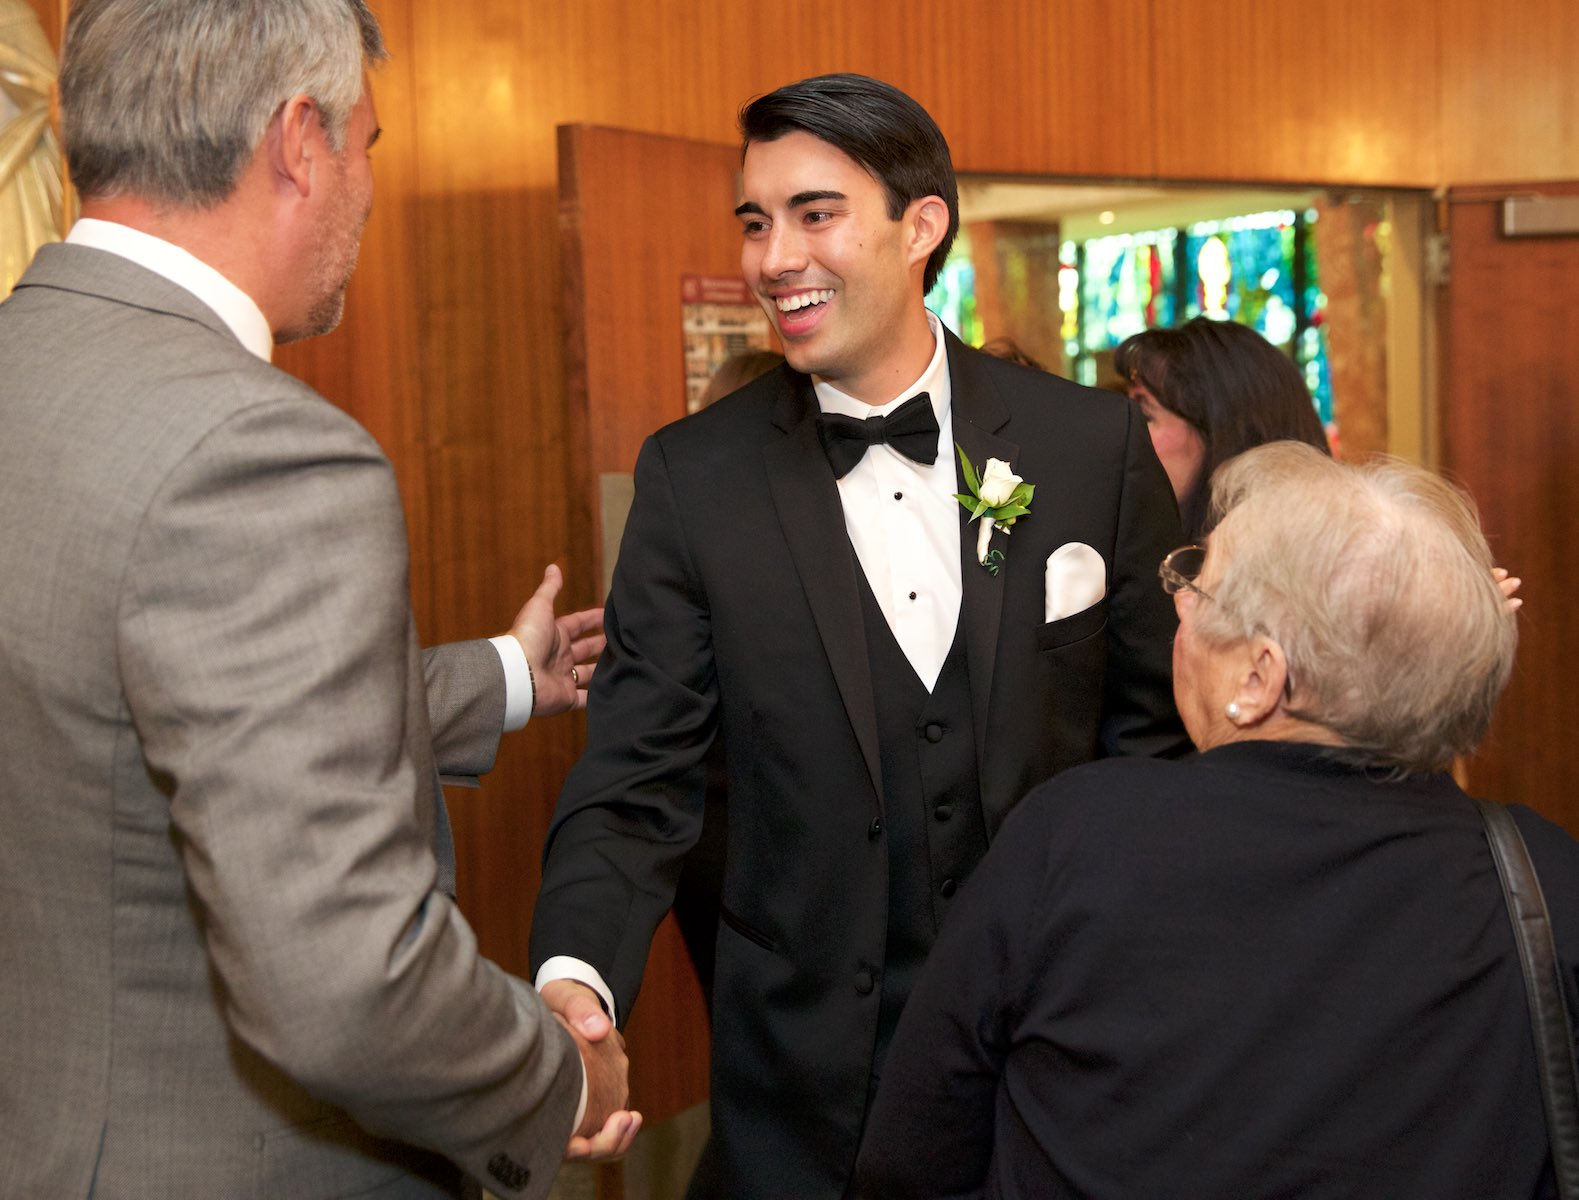 Daniel greets guests before the start of the ceremony at St. Rita of Cascia Shrine Chapel in Chicago. Wedding photography by Steve & Tiffany Warmowski